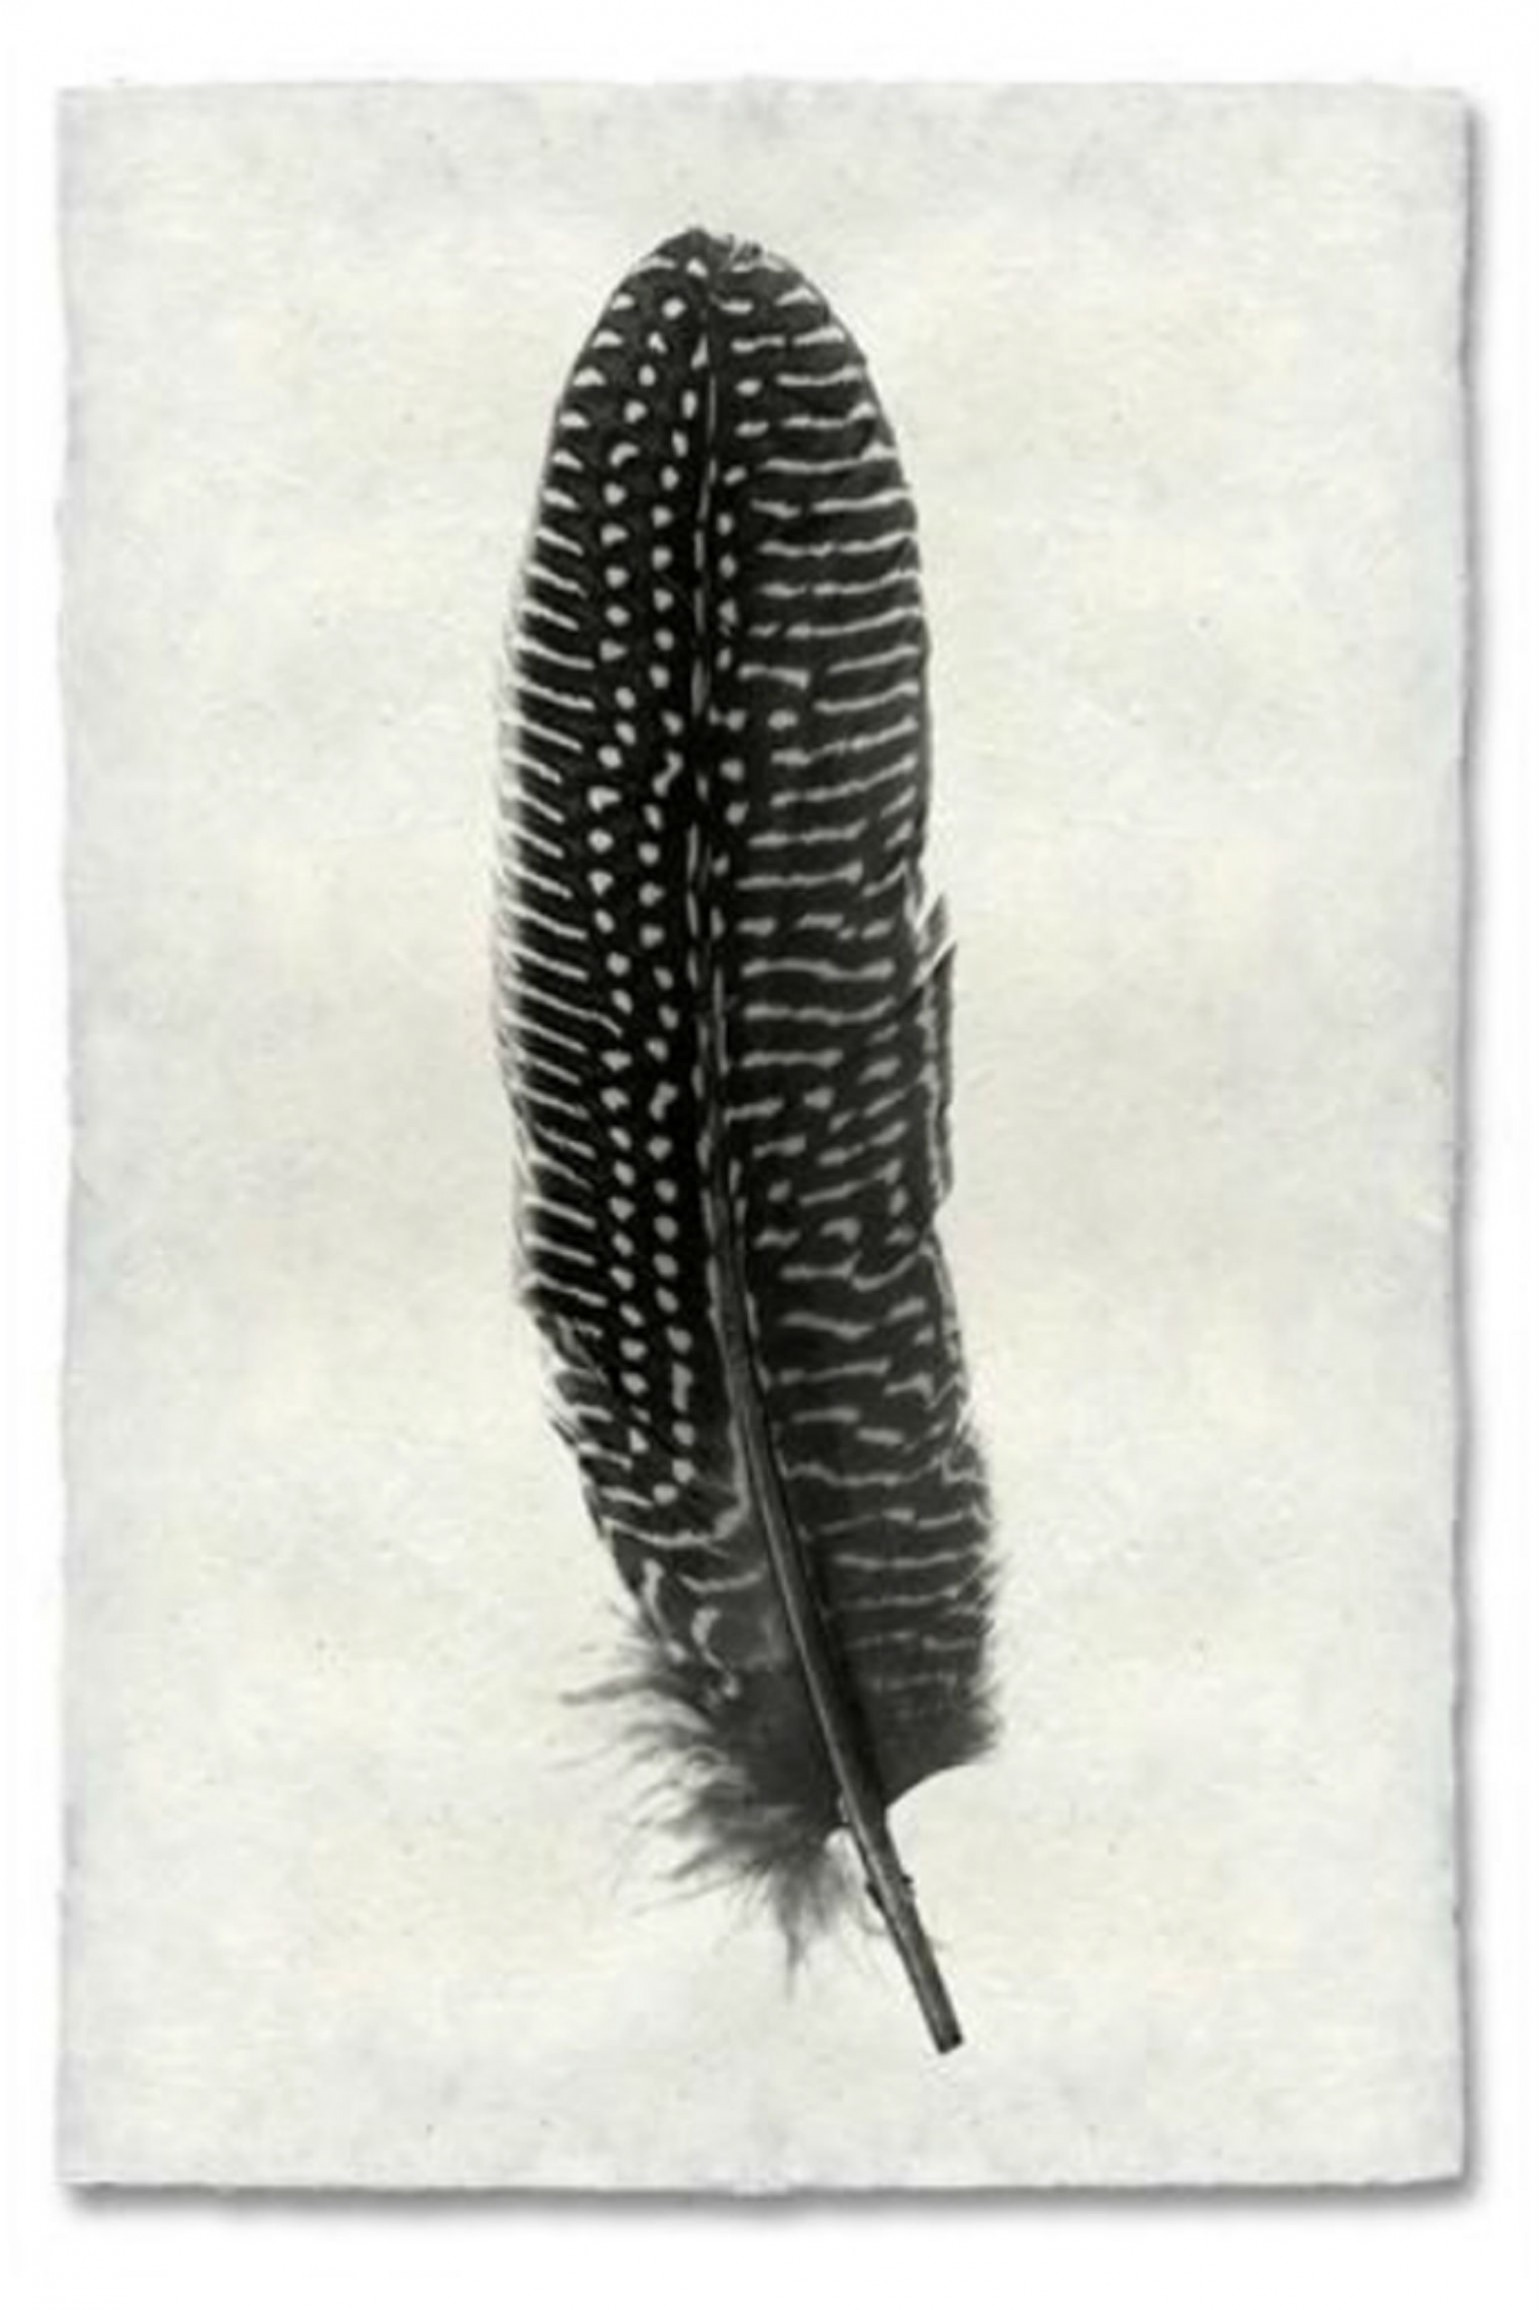 Atolyia Barloga Feather Print #5 on Natural Paper